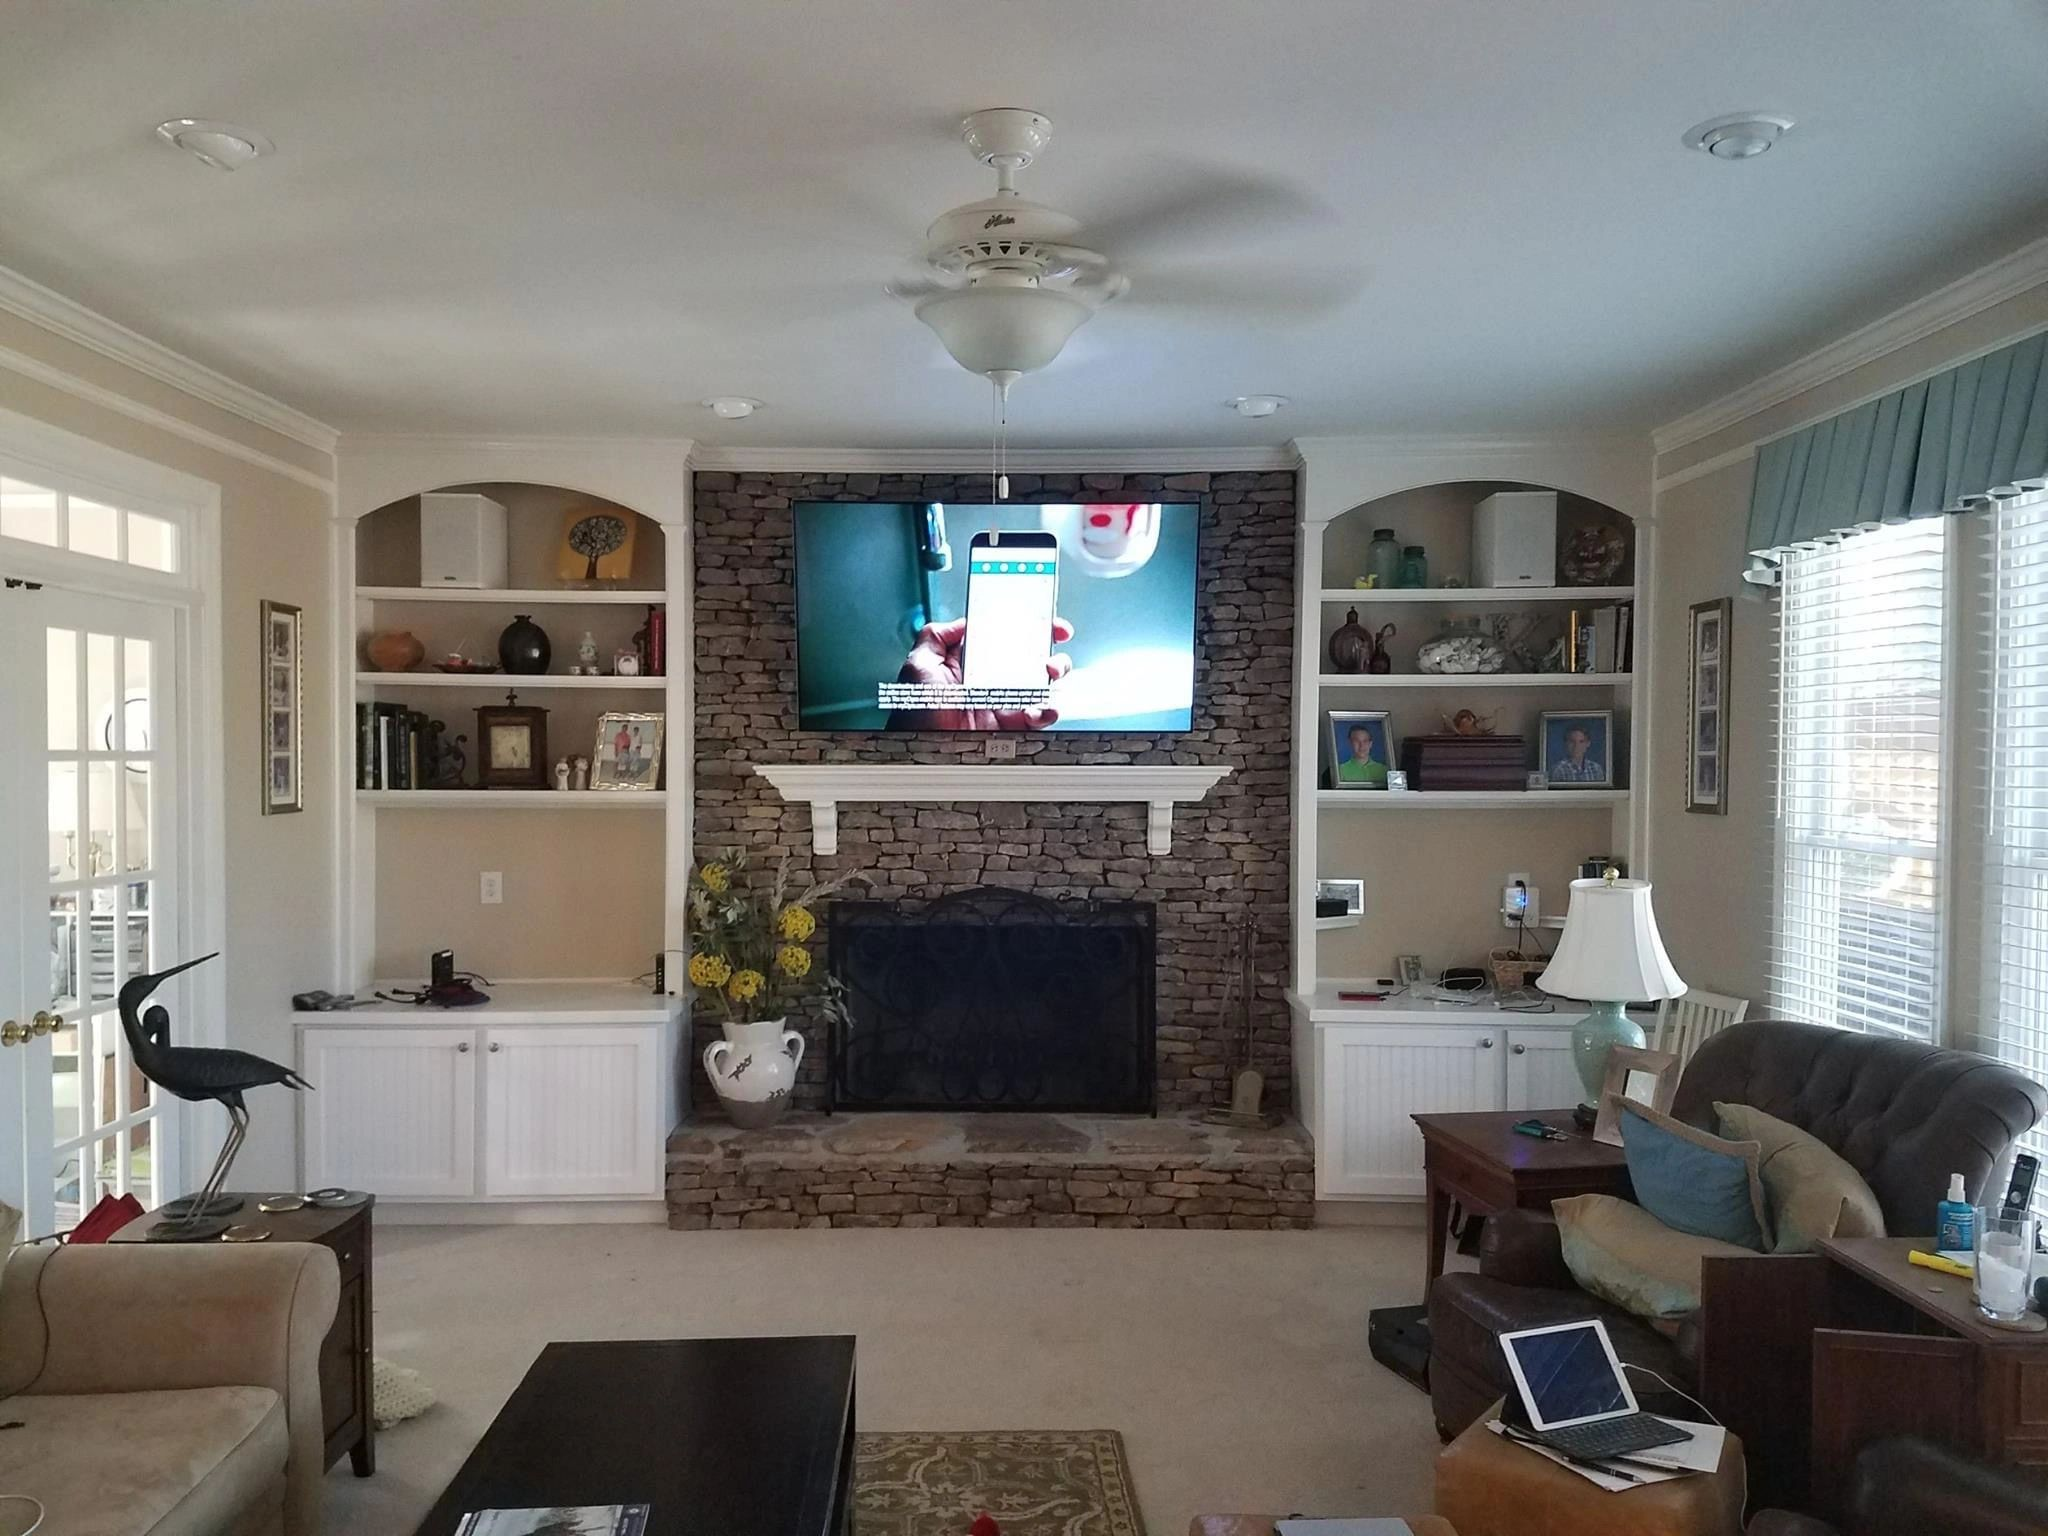 Living Room, TV, TV mount, TV over fireplace, media room, control system, streaming, entertainment,